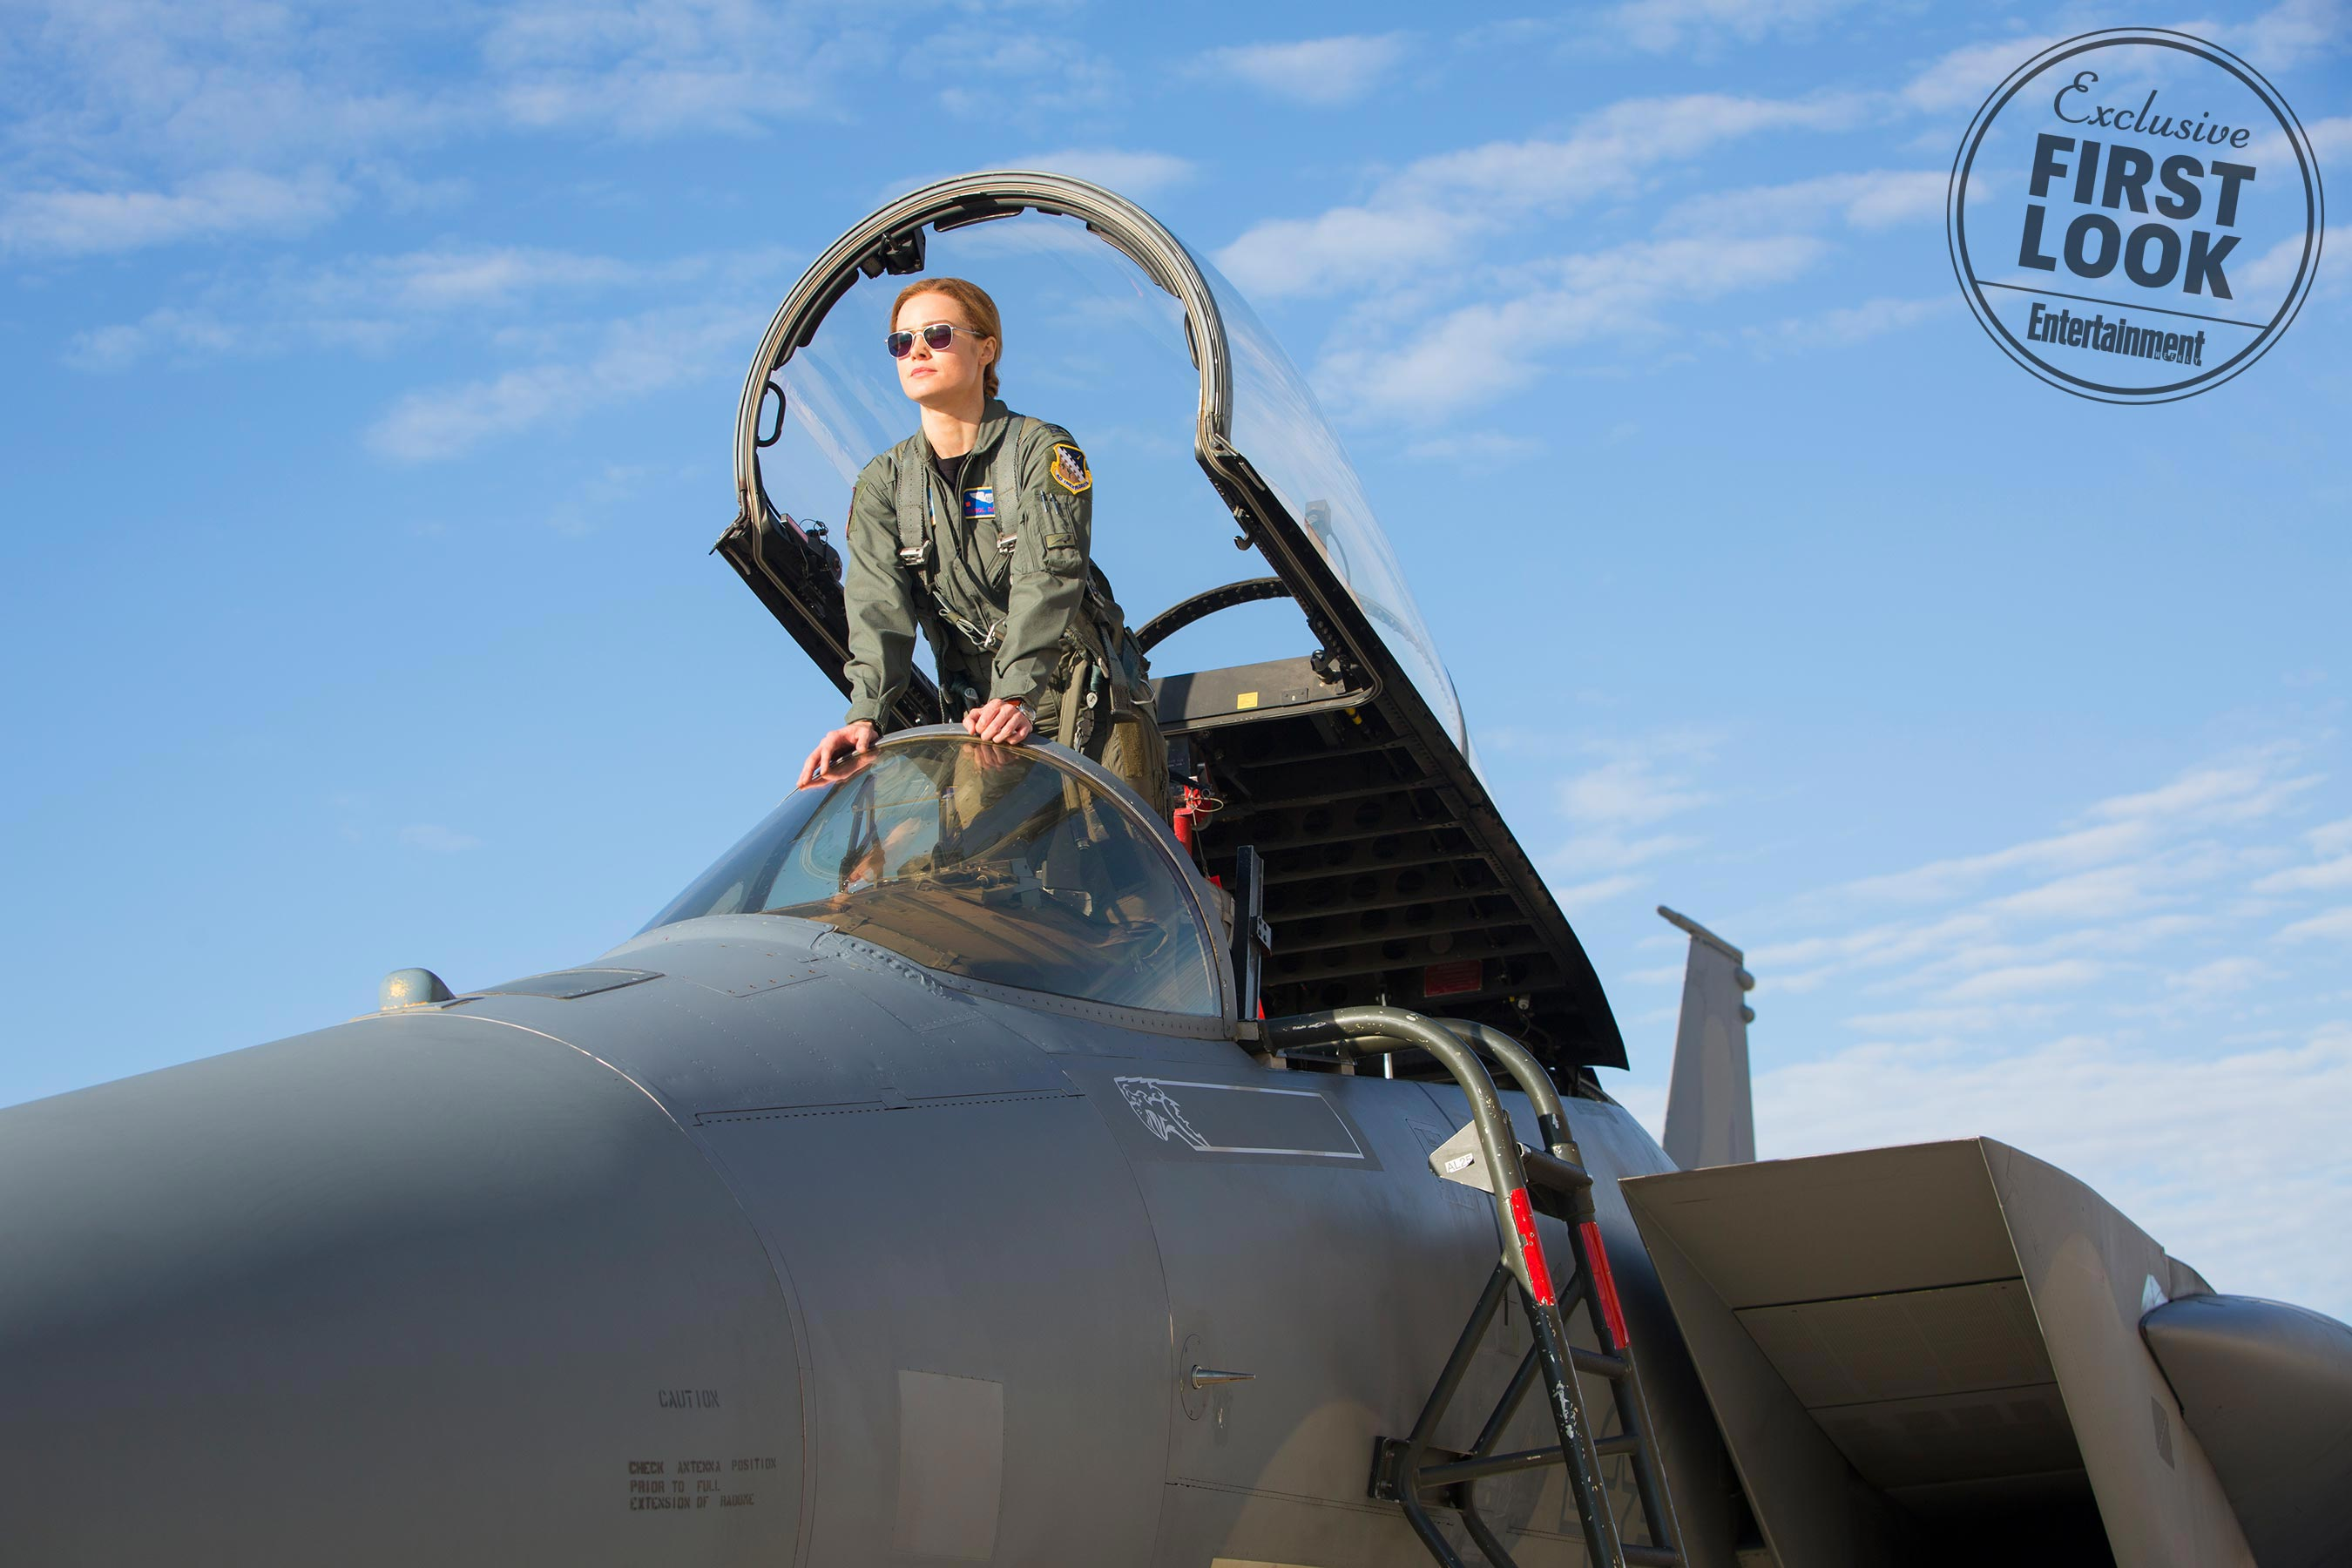 Photo du film Captain Marvel avec Brie Larson en pilote de l'Air Force.